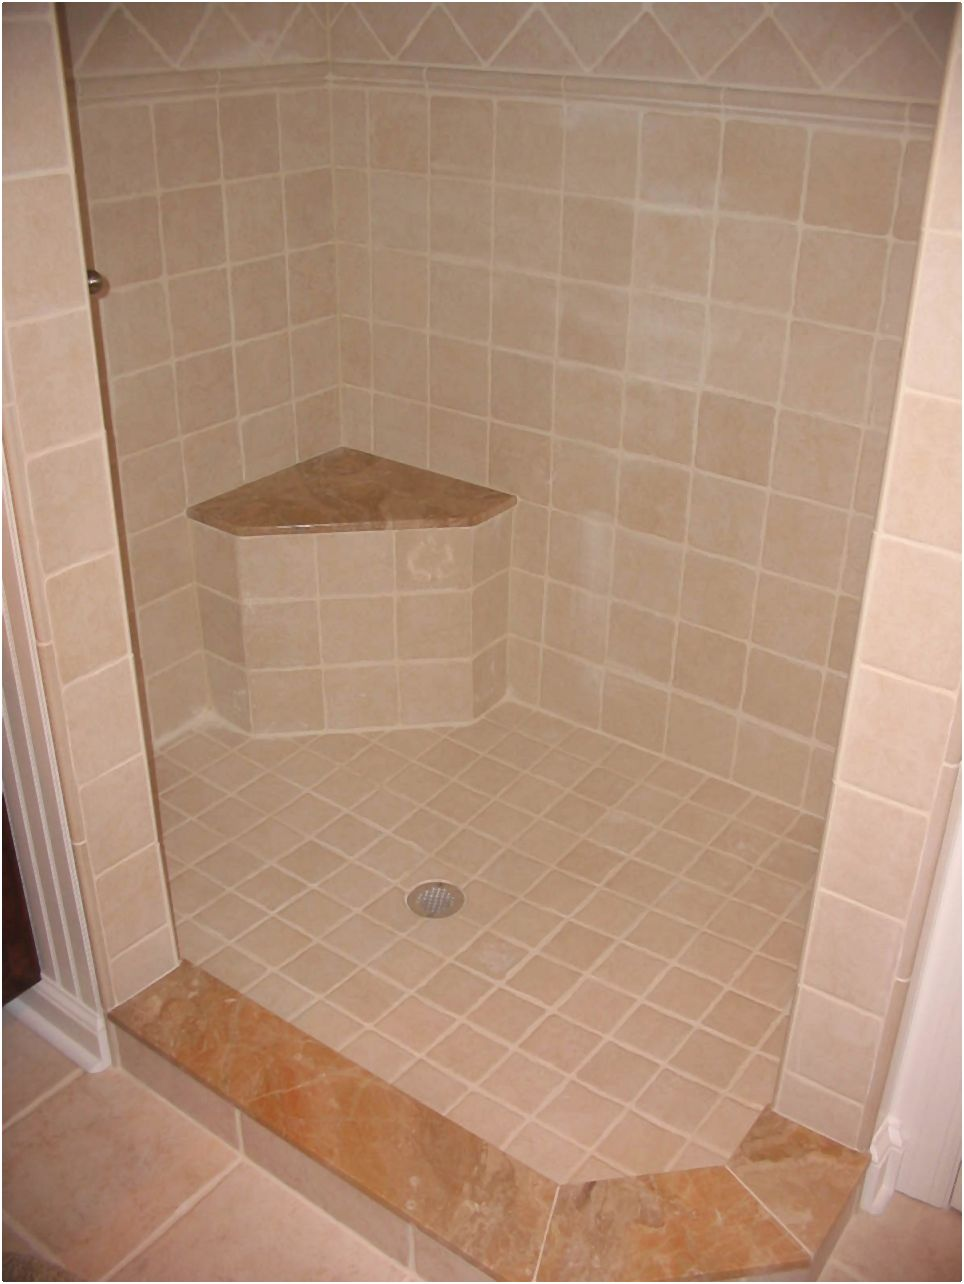 30 Shower tile ideas on a bud